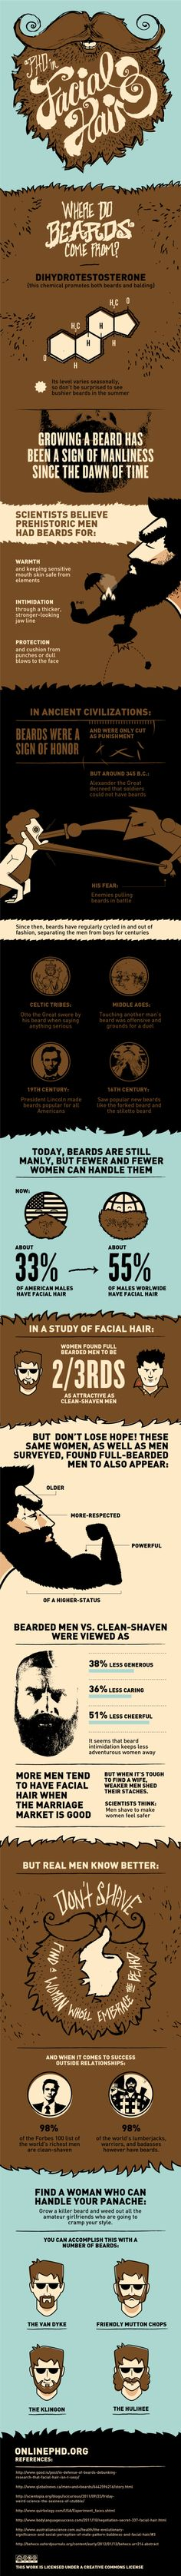 Everything you need to know about facial hair in one infographic.